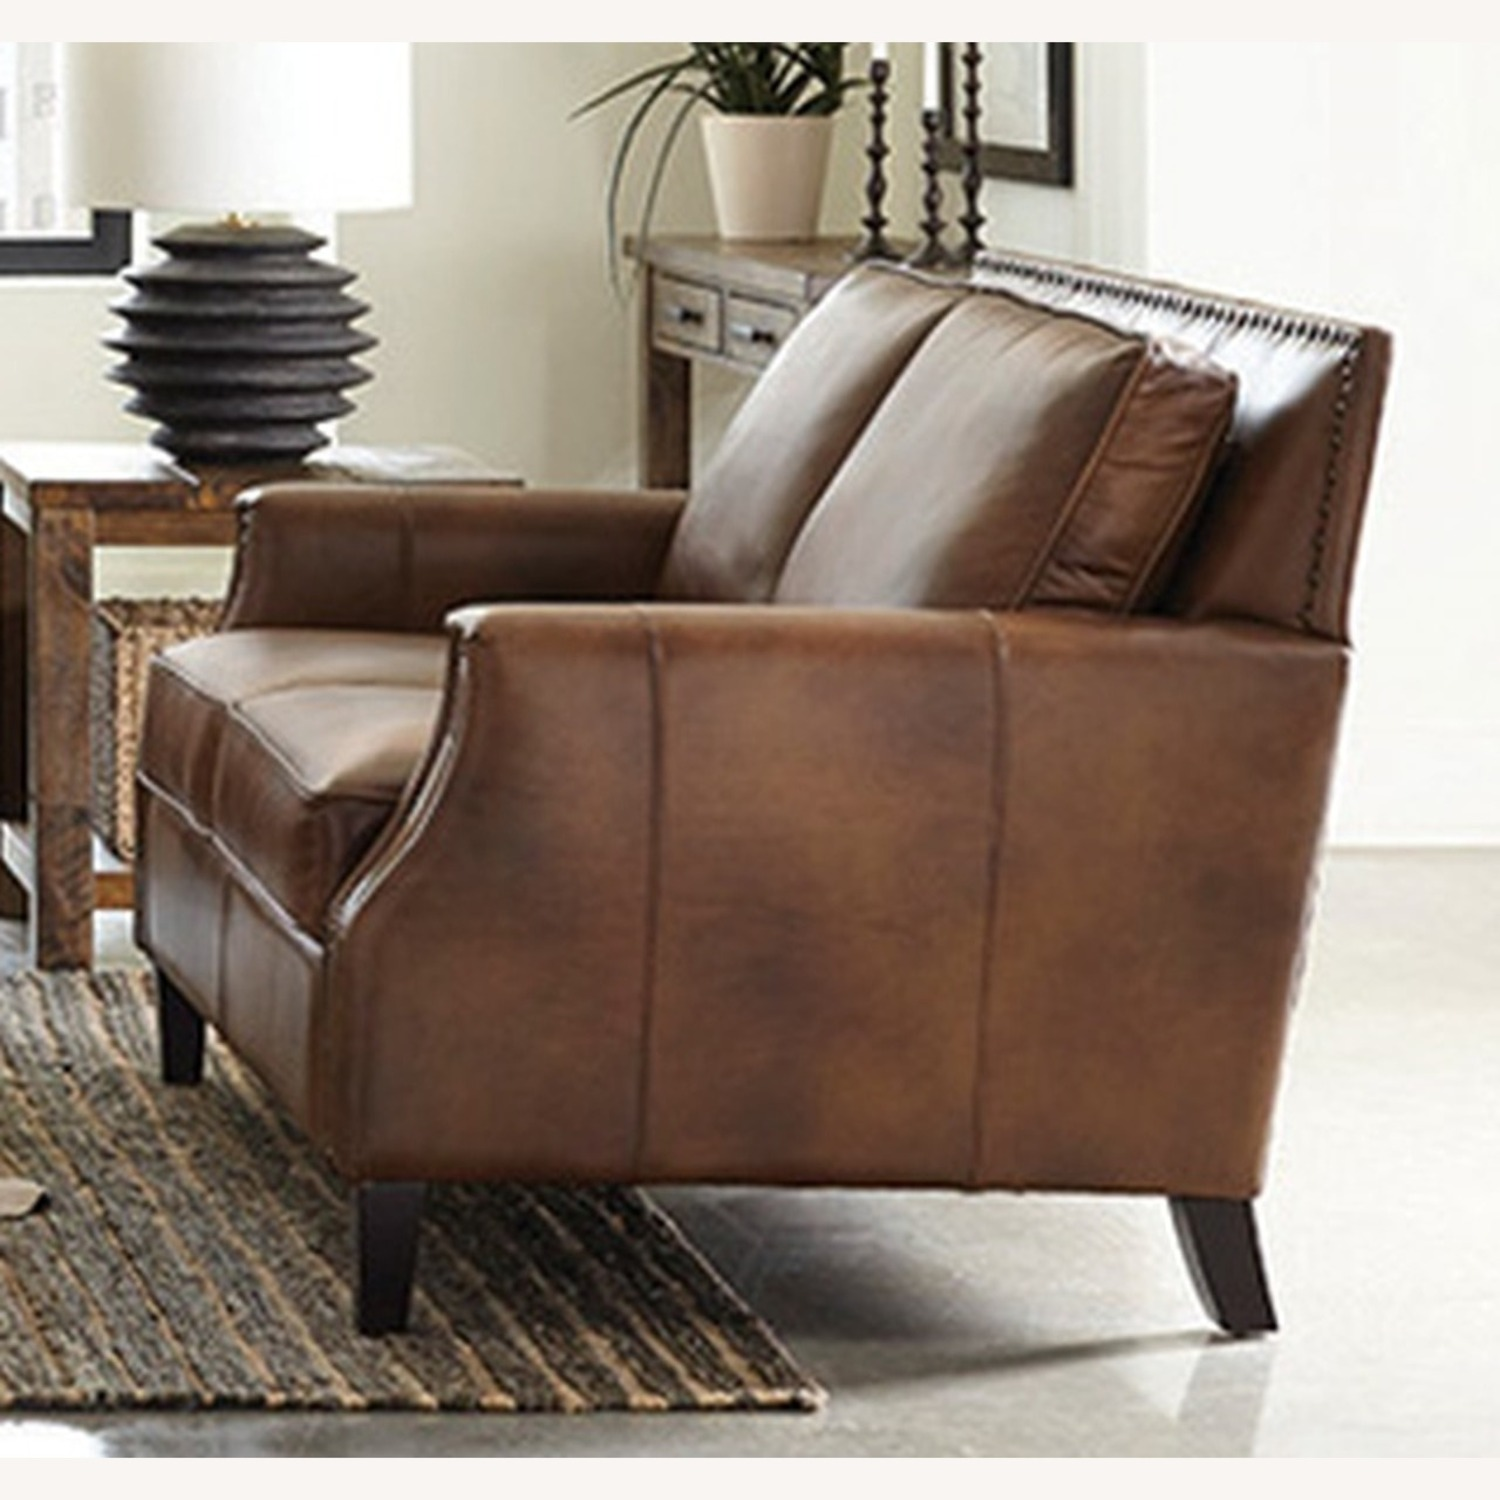 Loveseat In Brown Sugar Leather Upholstery - image-0